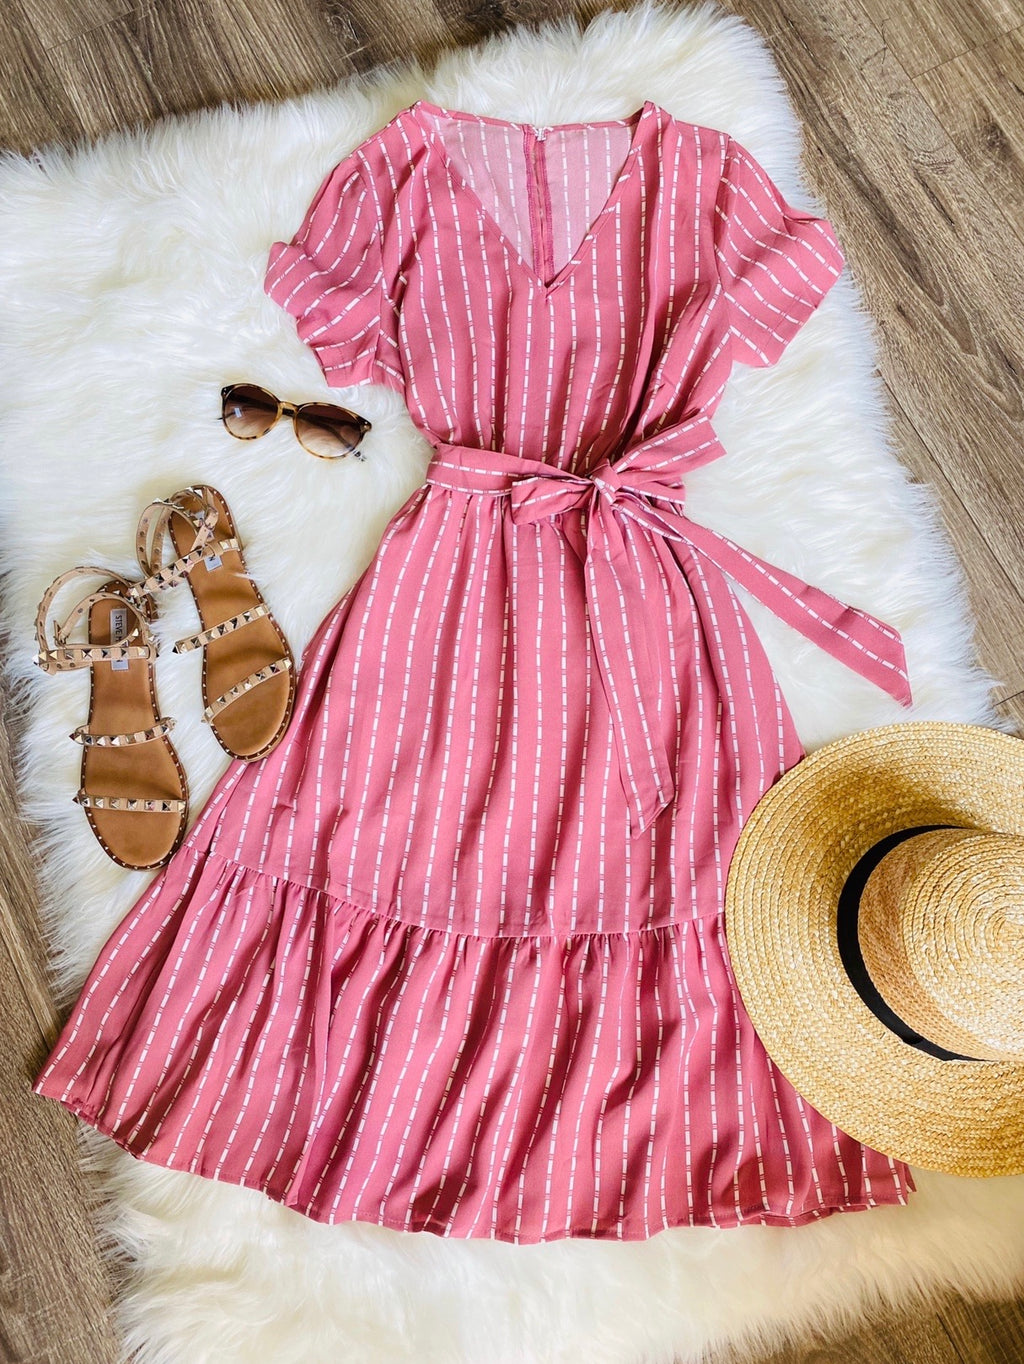 The Charming Dress - In Pink - The Darling Style - Modest Dresses